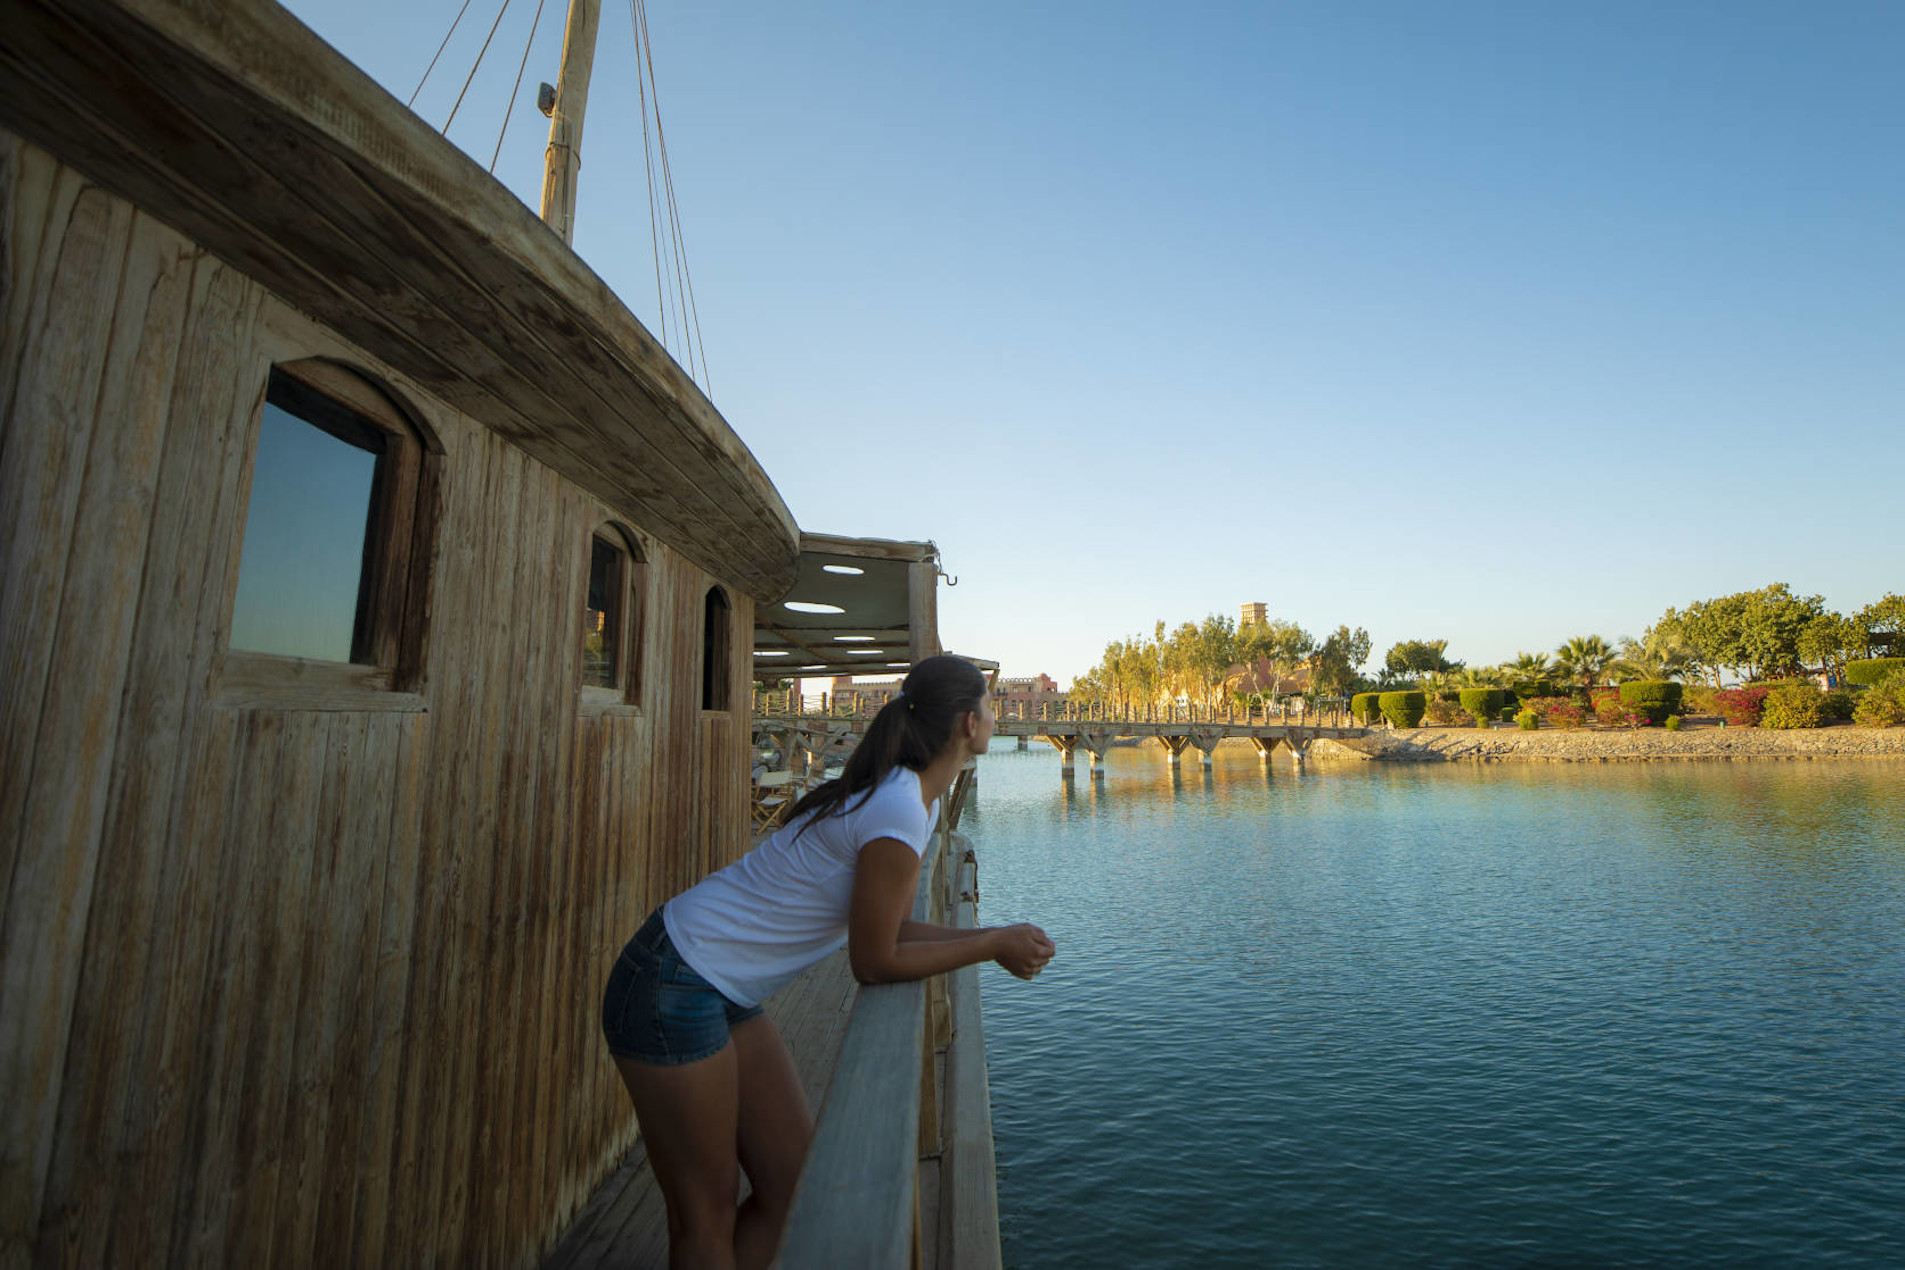 A girl is standing on the wine boat with the view of Red Sea waters in Sheraton Miramar Resort El Gouna